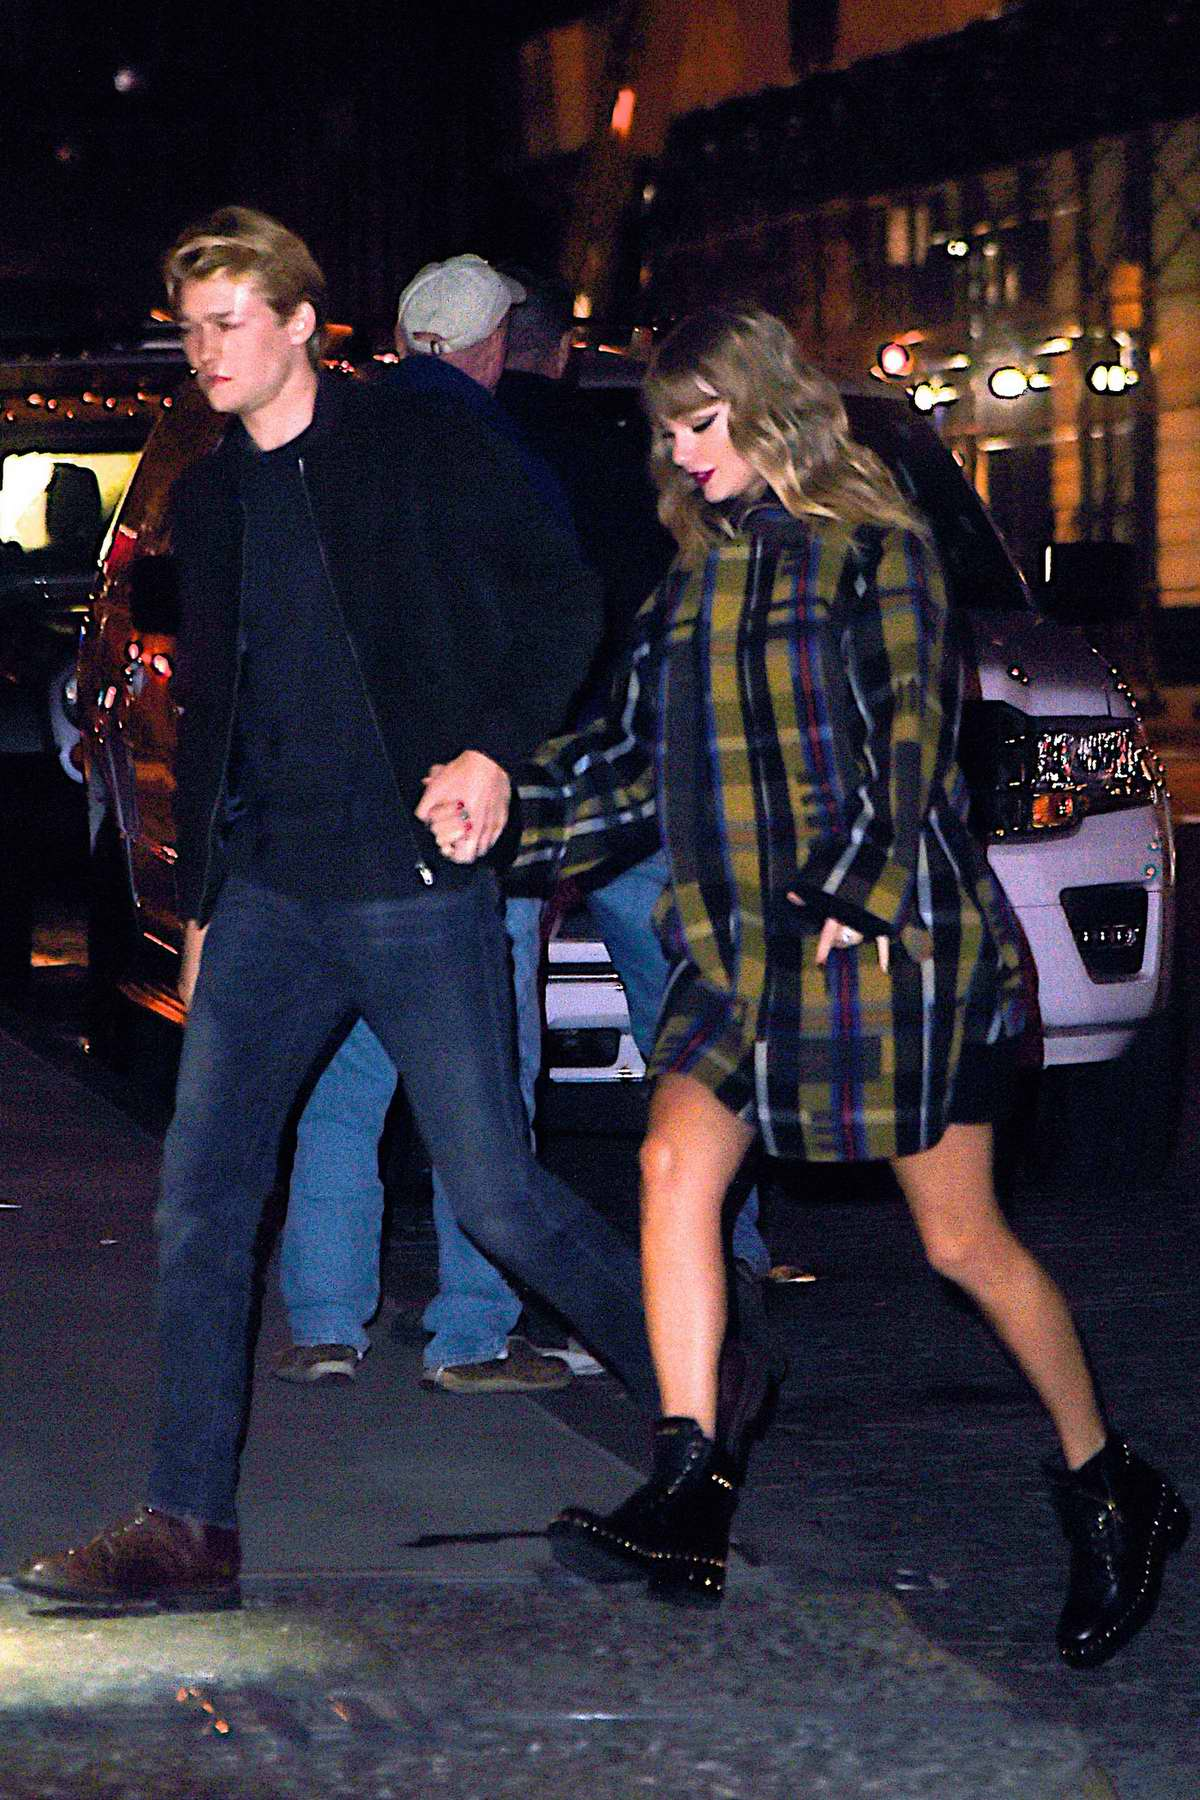 Taylor Swift returns home holding hands with Joe Alwyn after 2017 Jingle Bell Concert in New York City